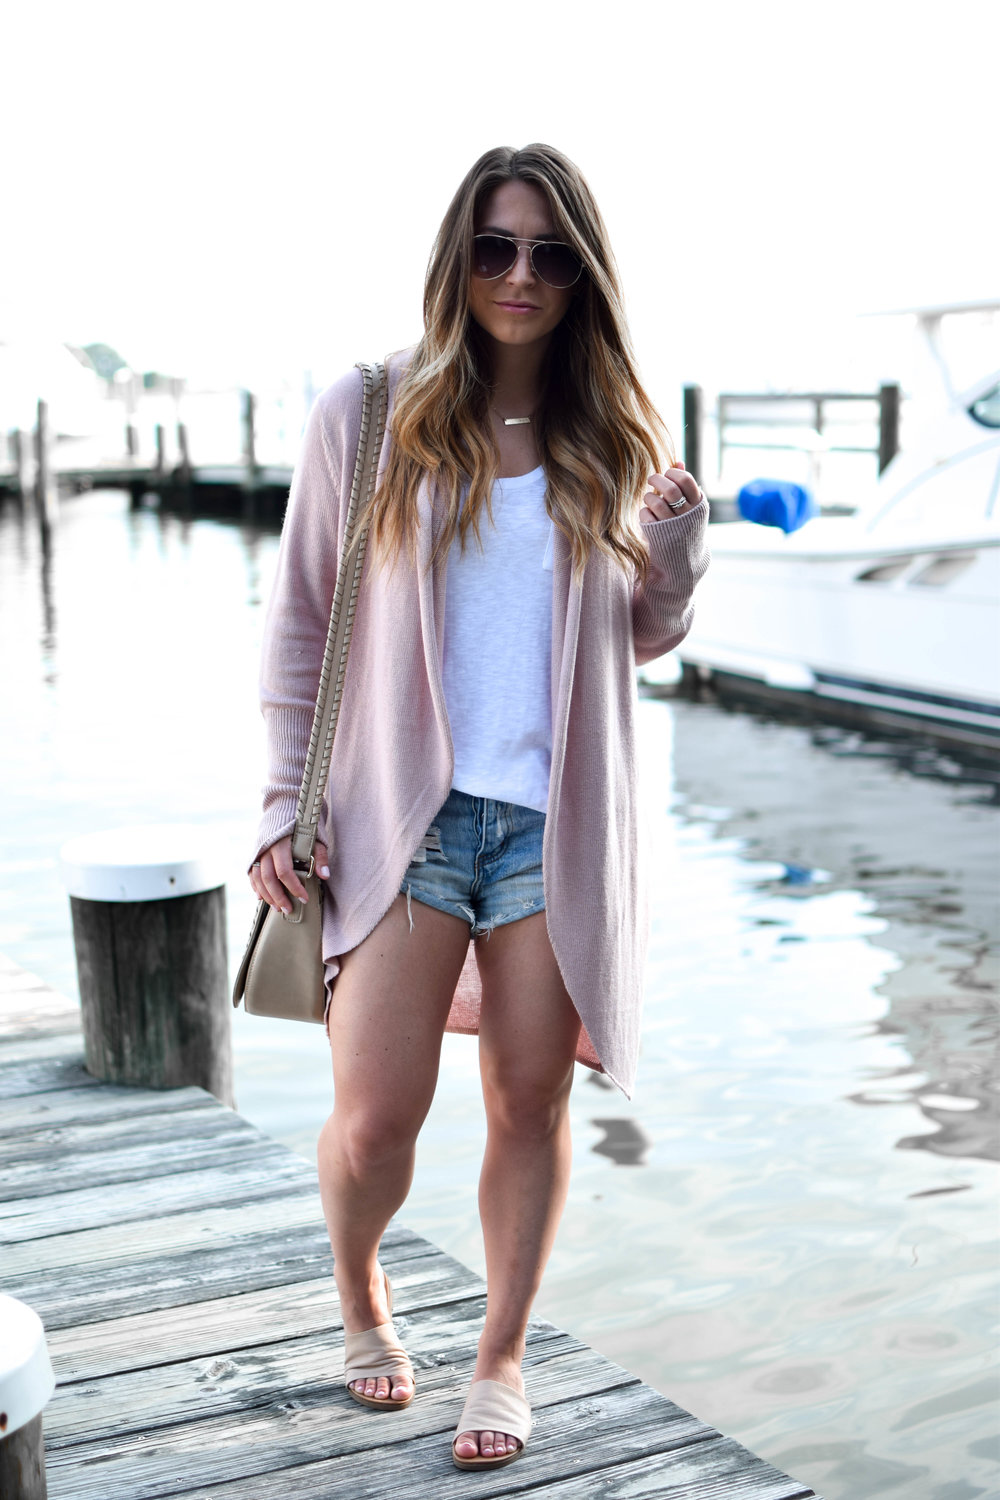 Nordstrom anniversary sale, Leith cardigan, Calson basic tee, one teaspoon denim shorts, summer outfit idea, fall transition outfit idea